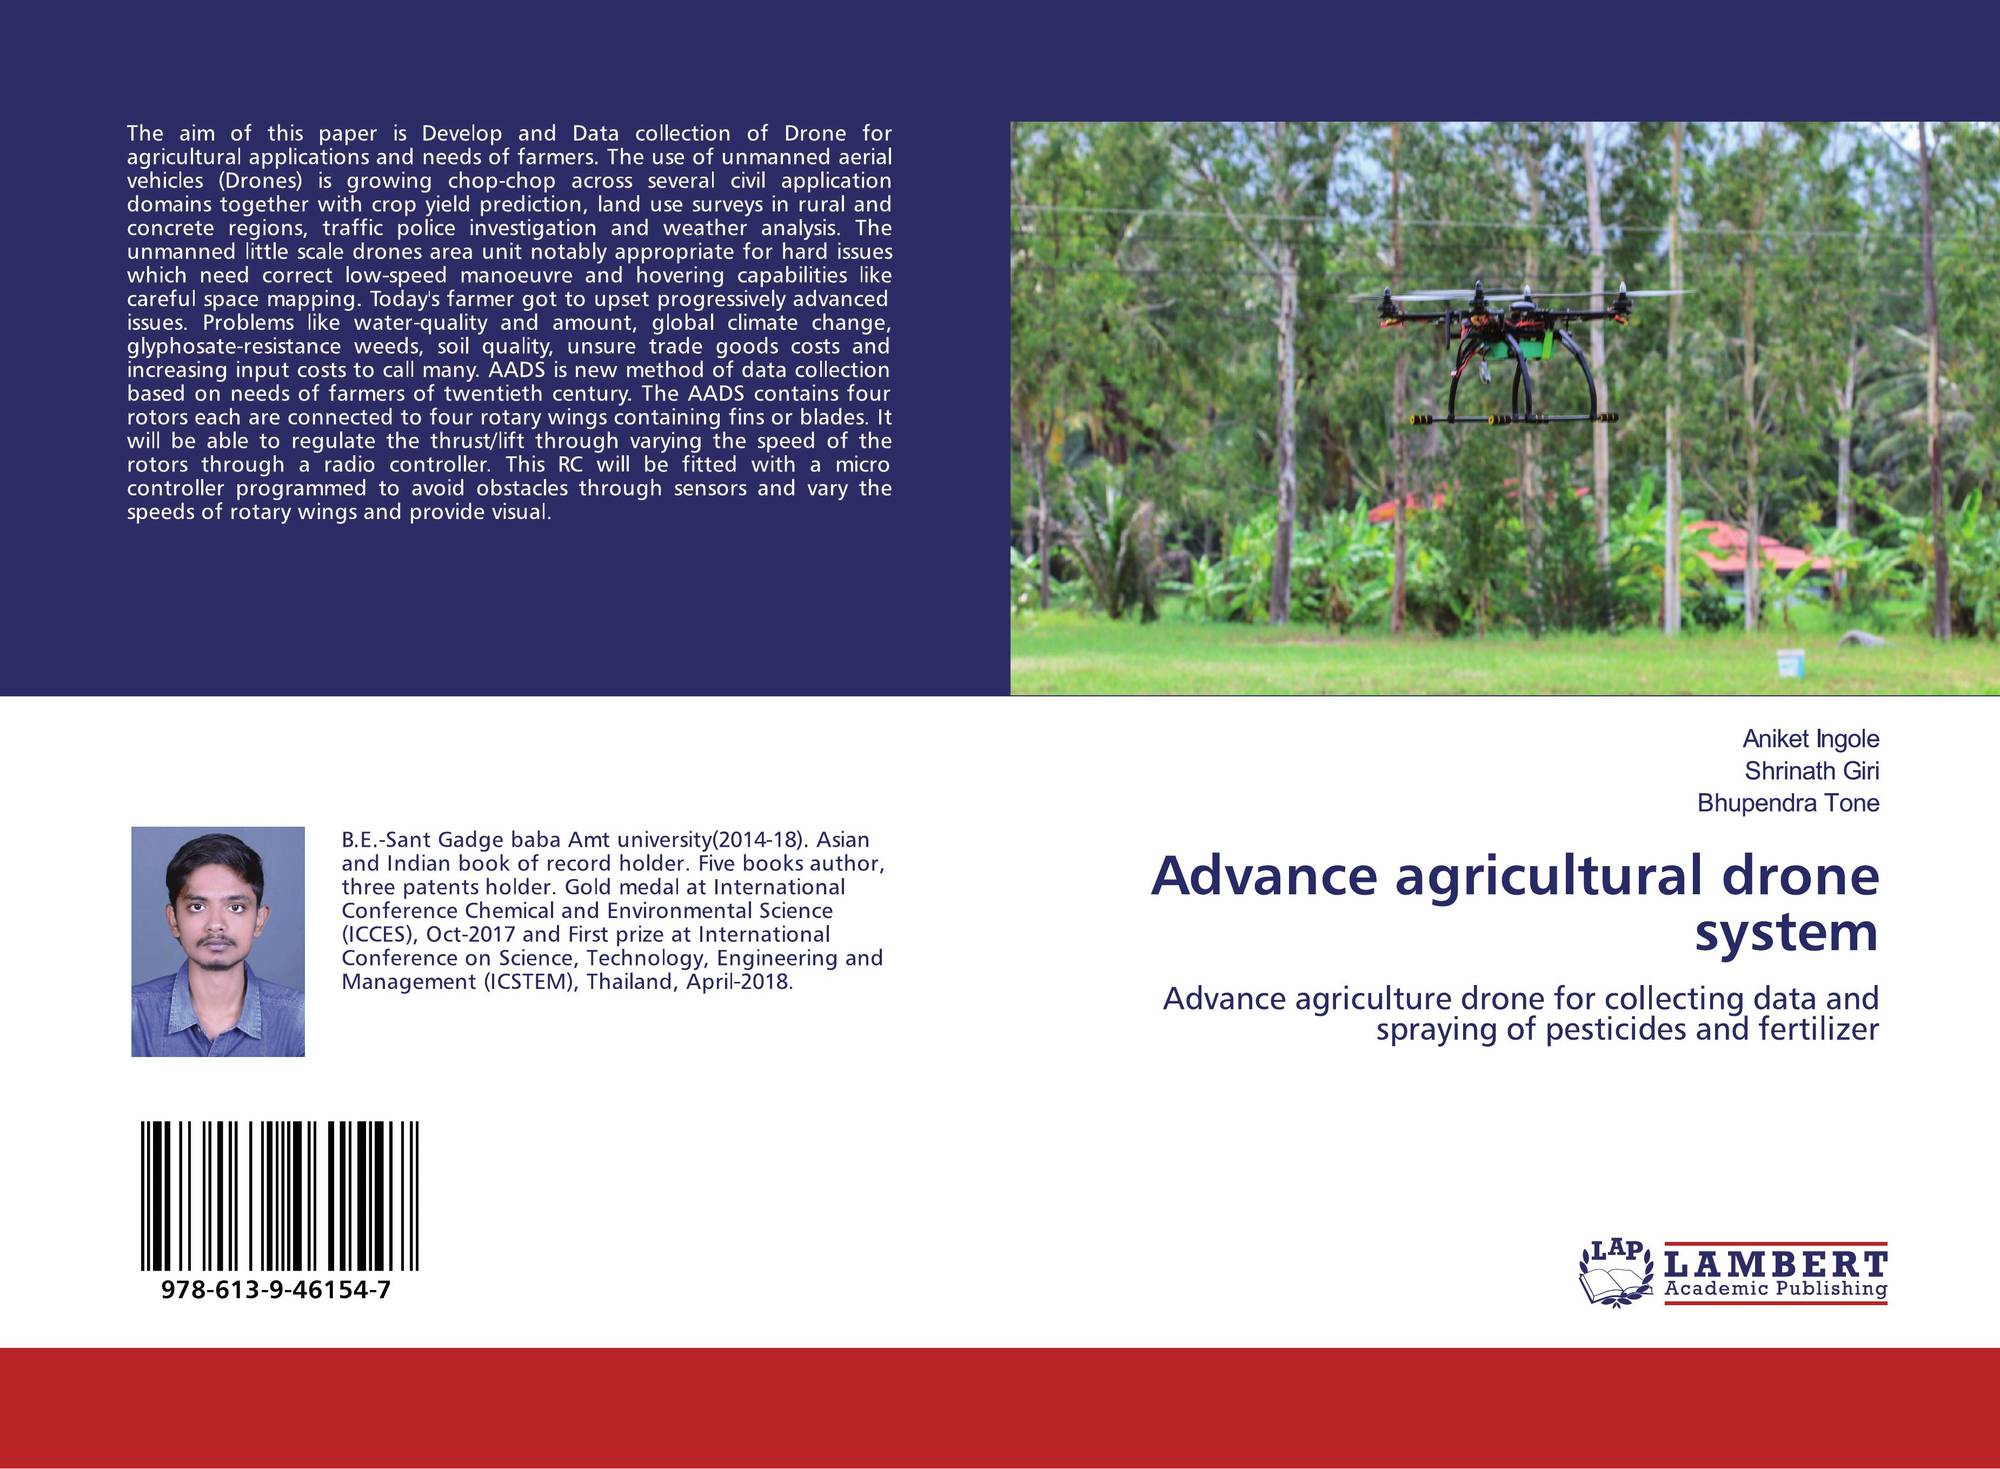 Advance agricultural drone system, 978-613-9-46154-7, 6139461545